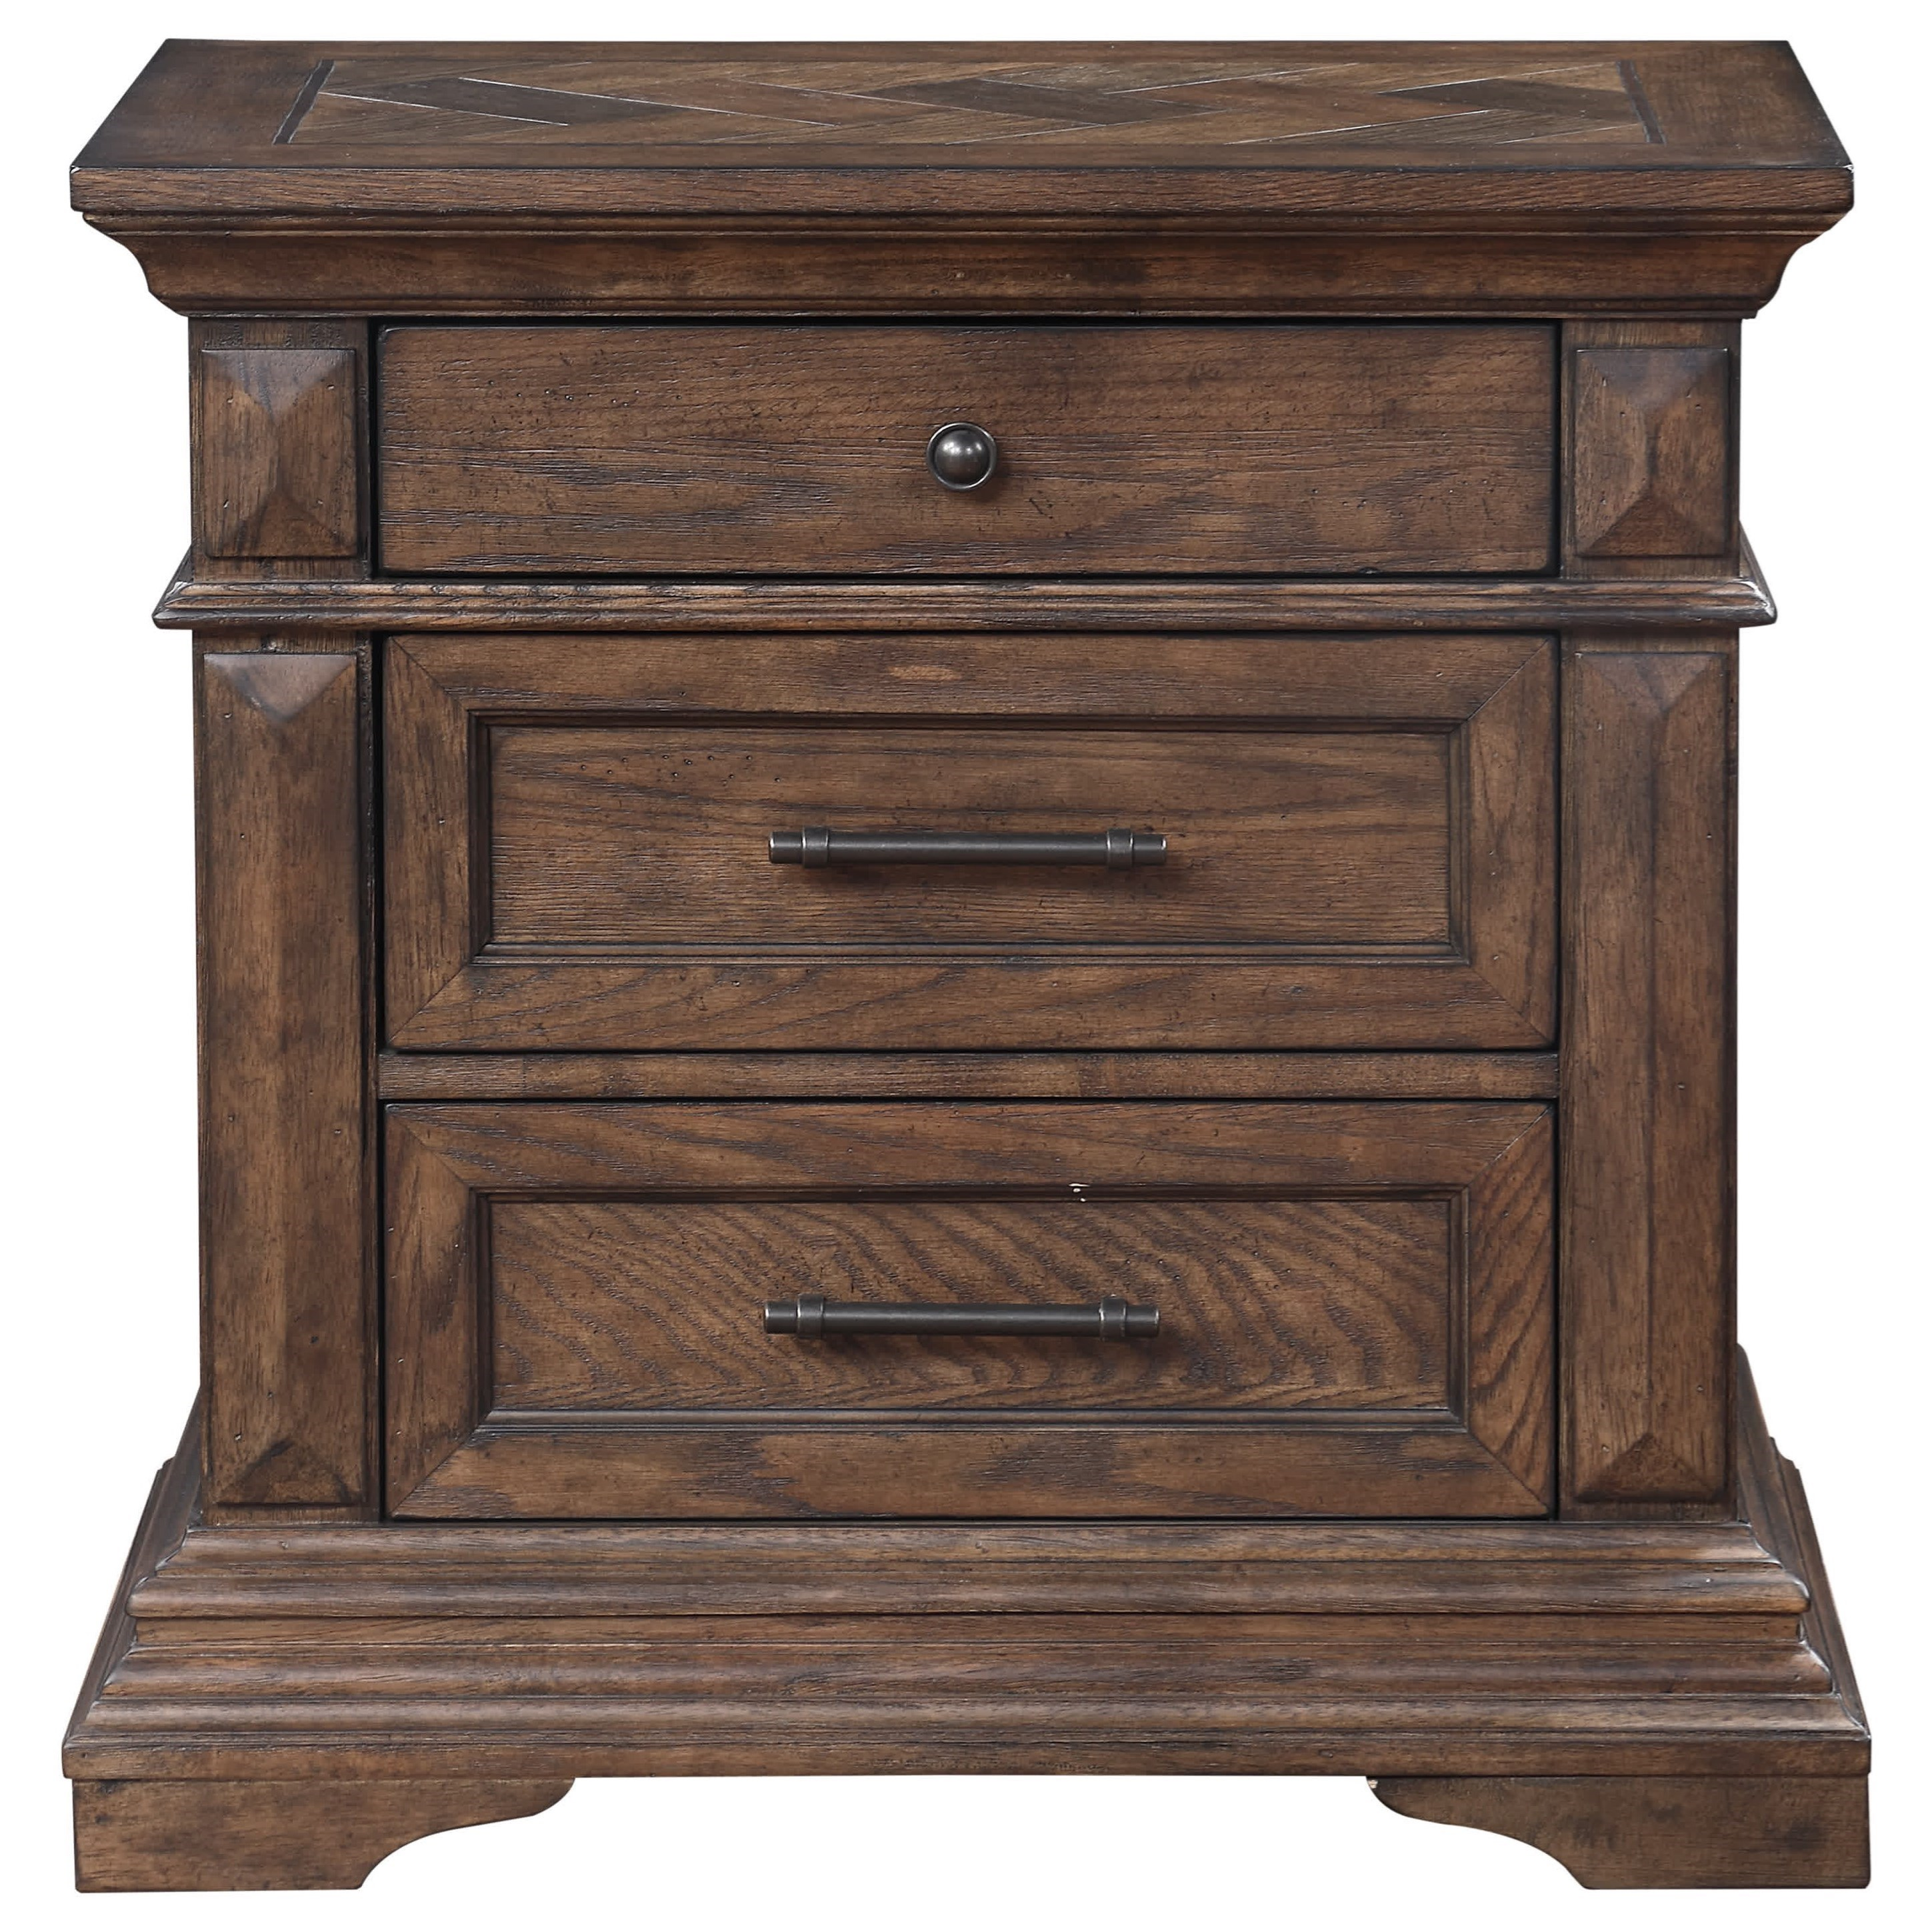 Mar Vista Nightstand by New Classic at Wilcox Furniture